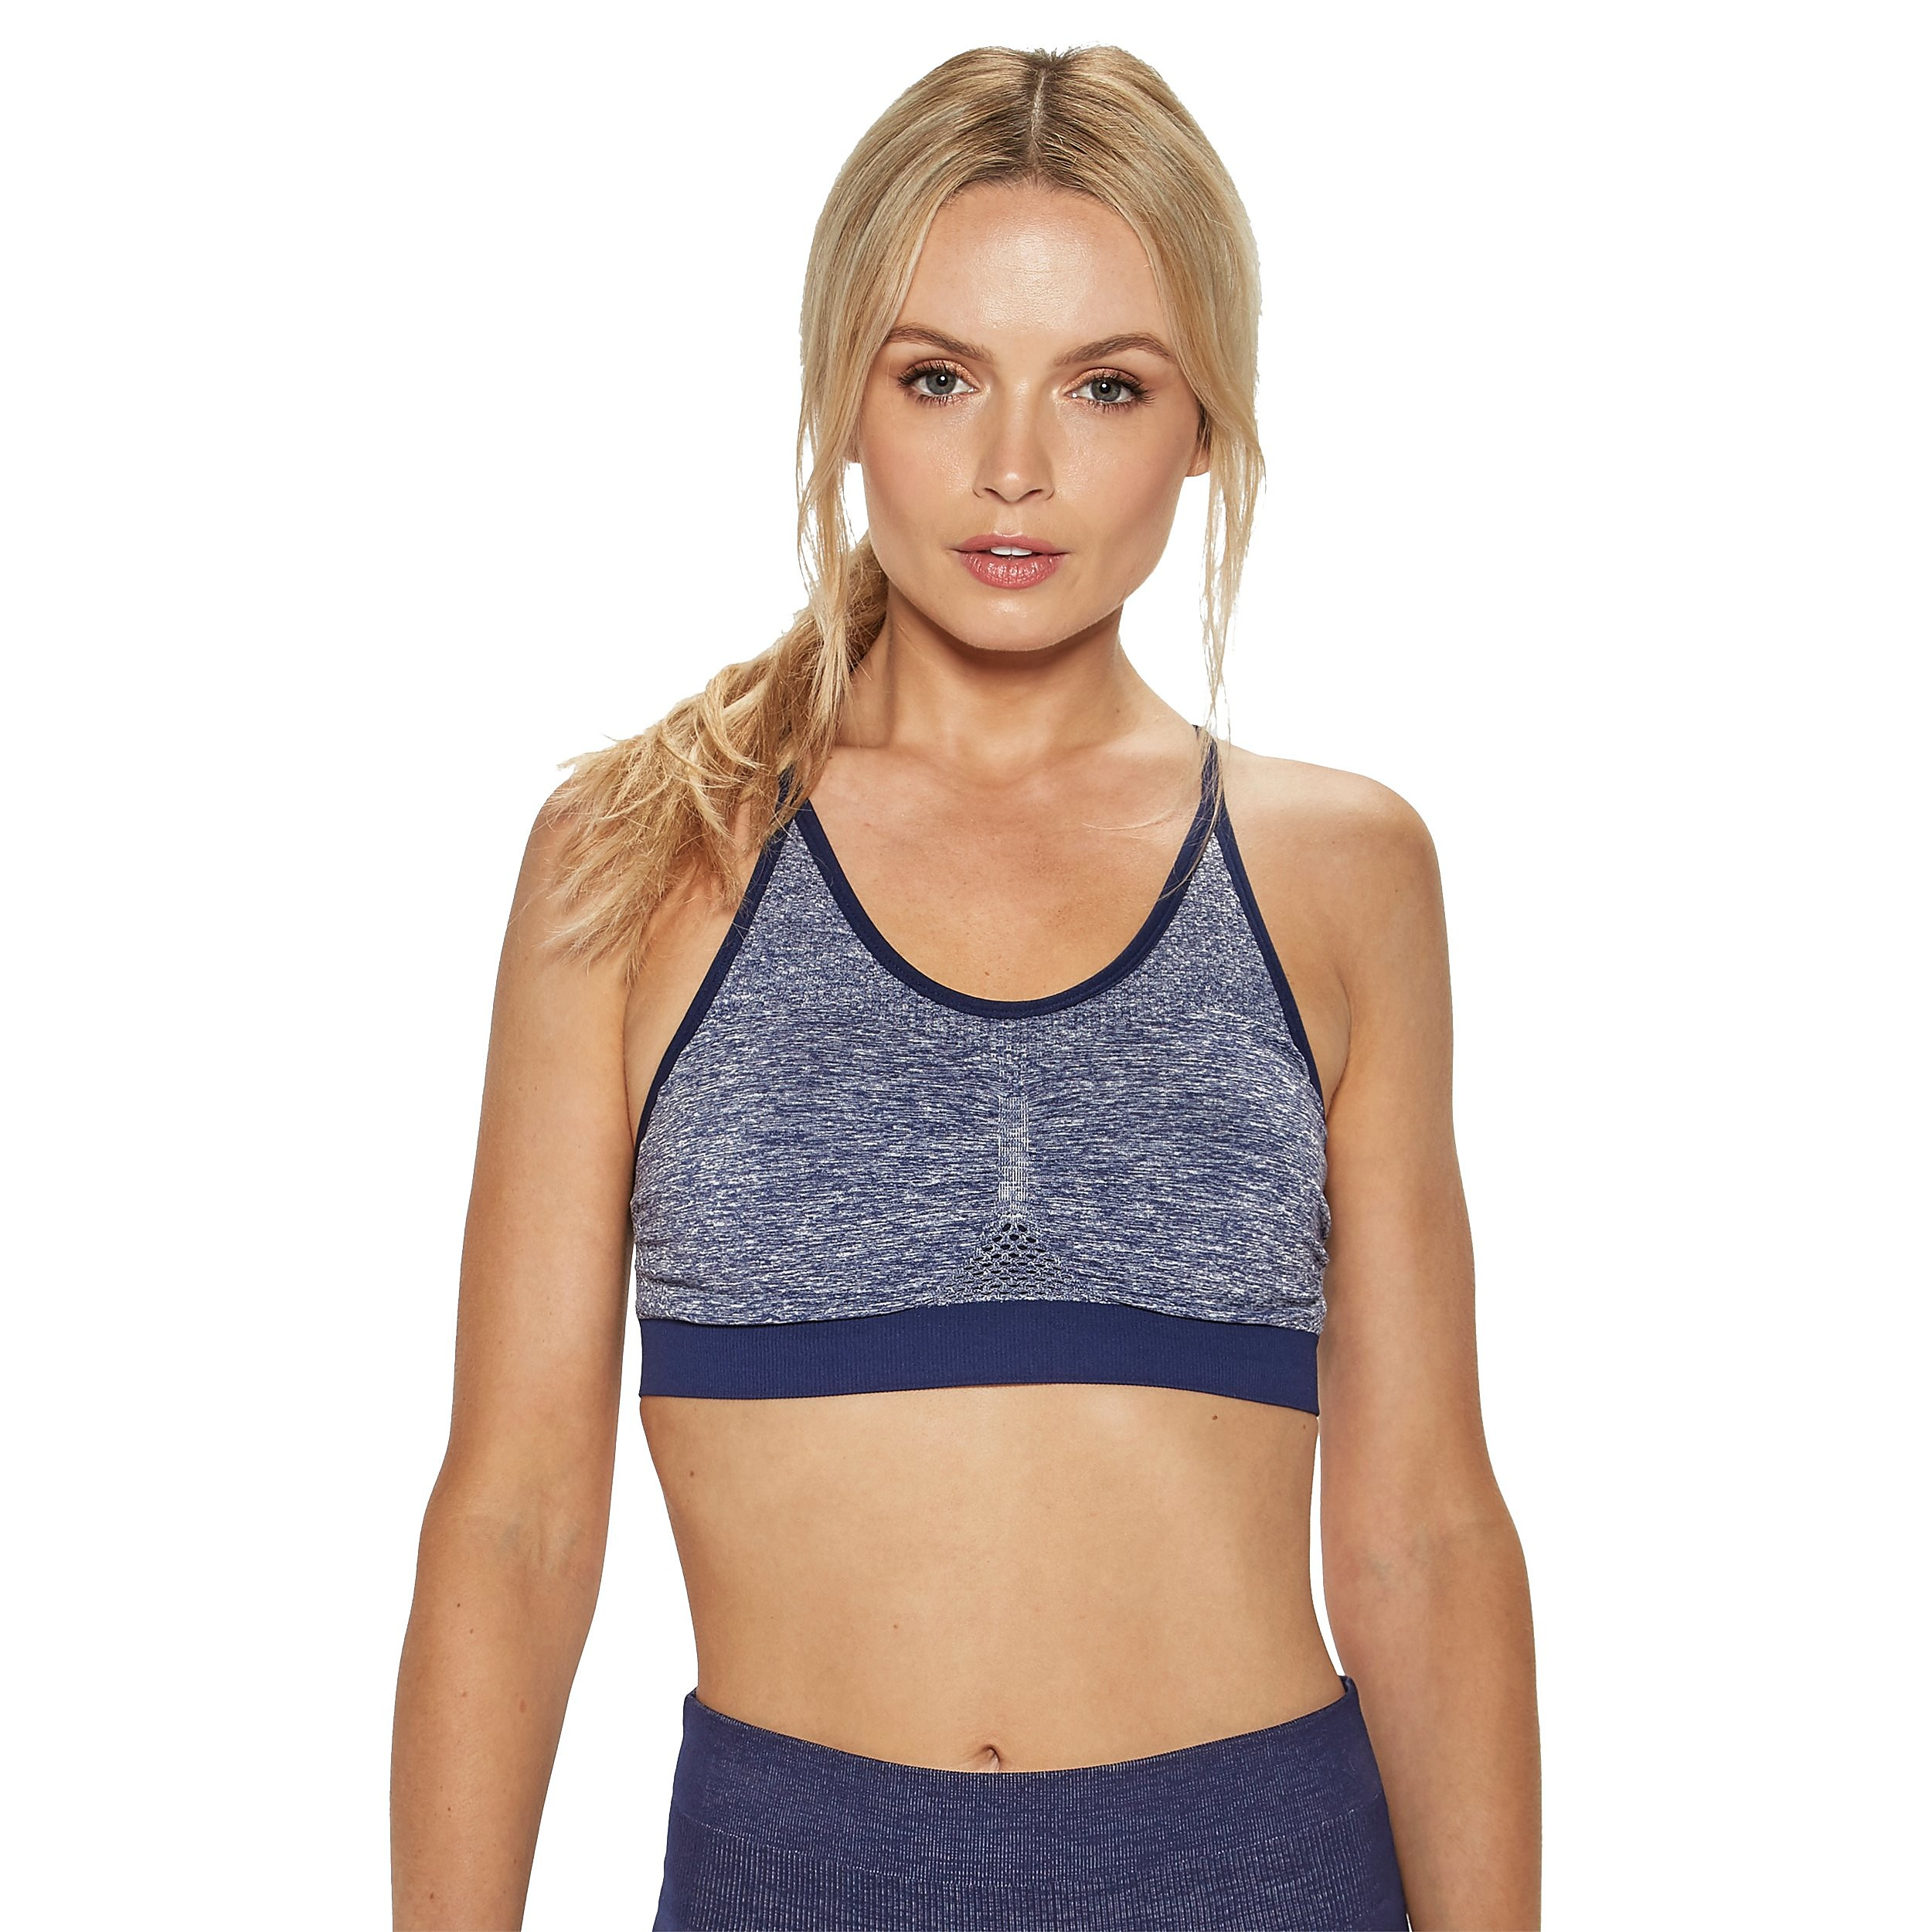 ASICS Seamless Women's Sports Bra